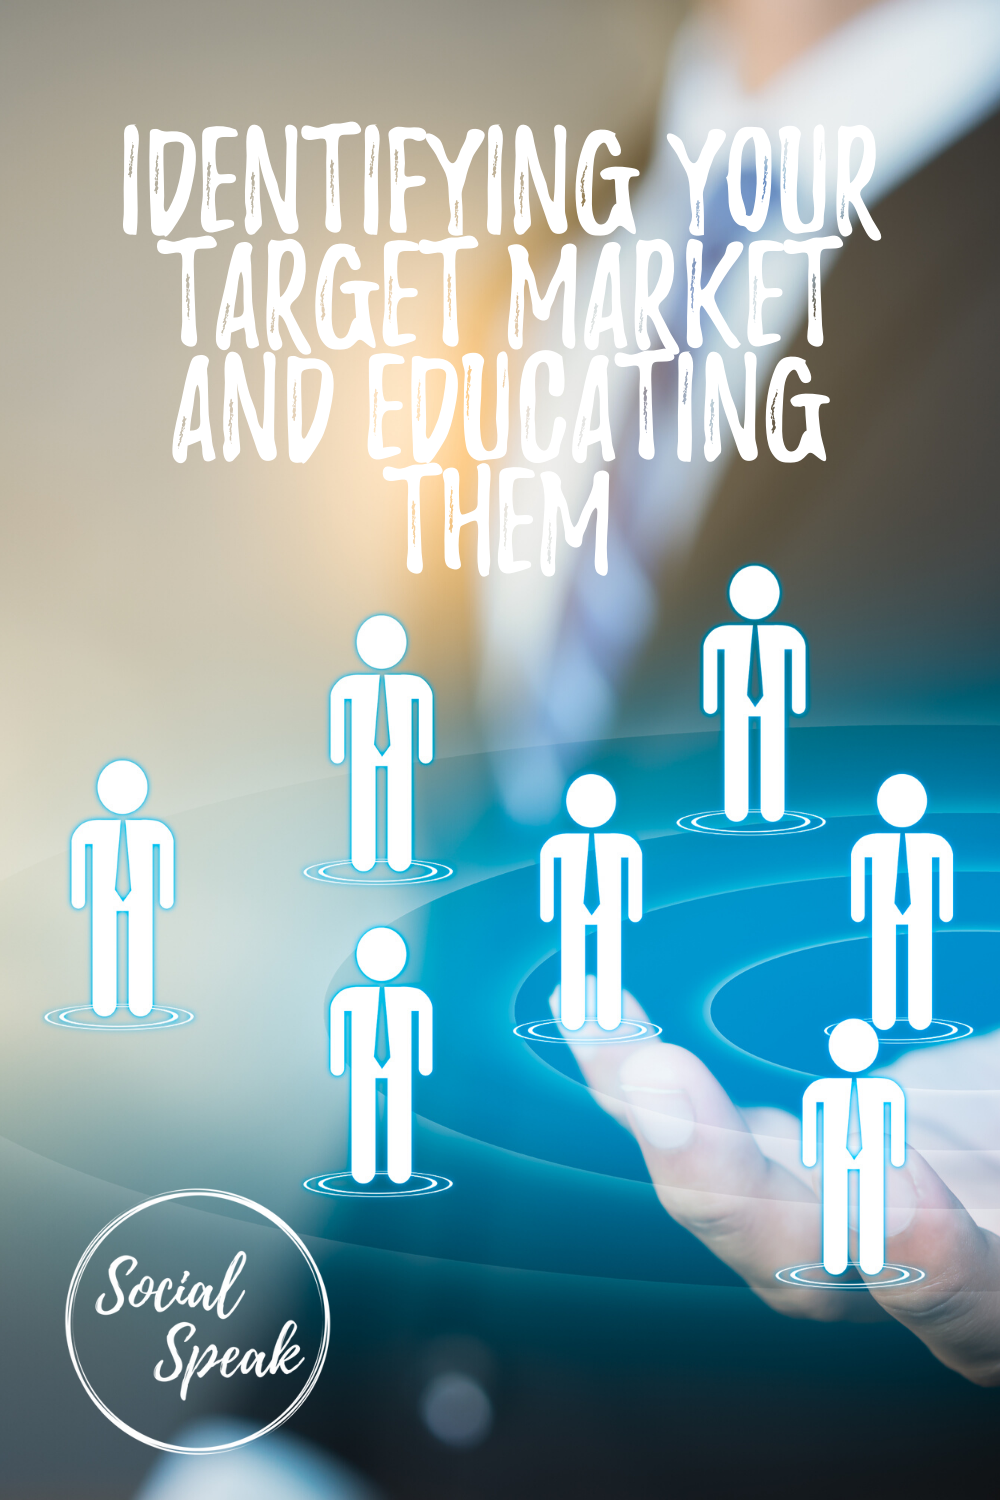 Identifying Your Target Market and Educating Them